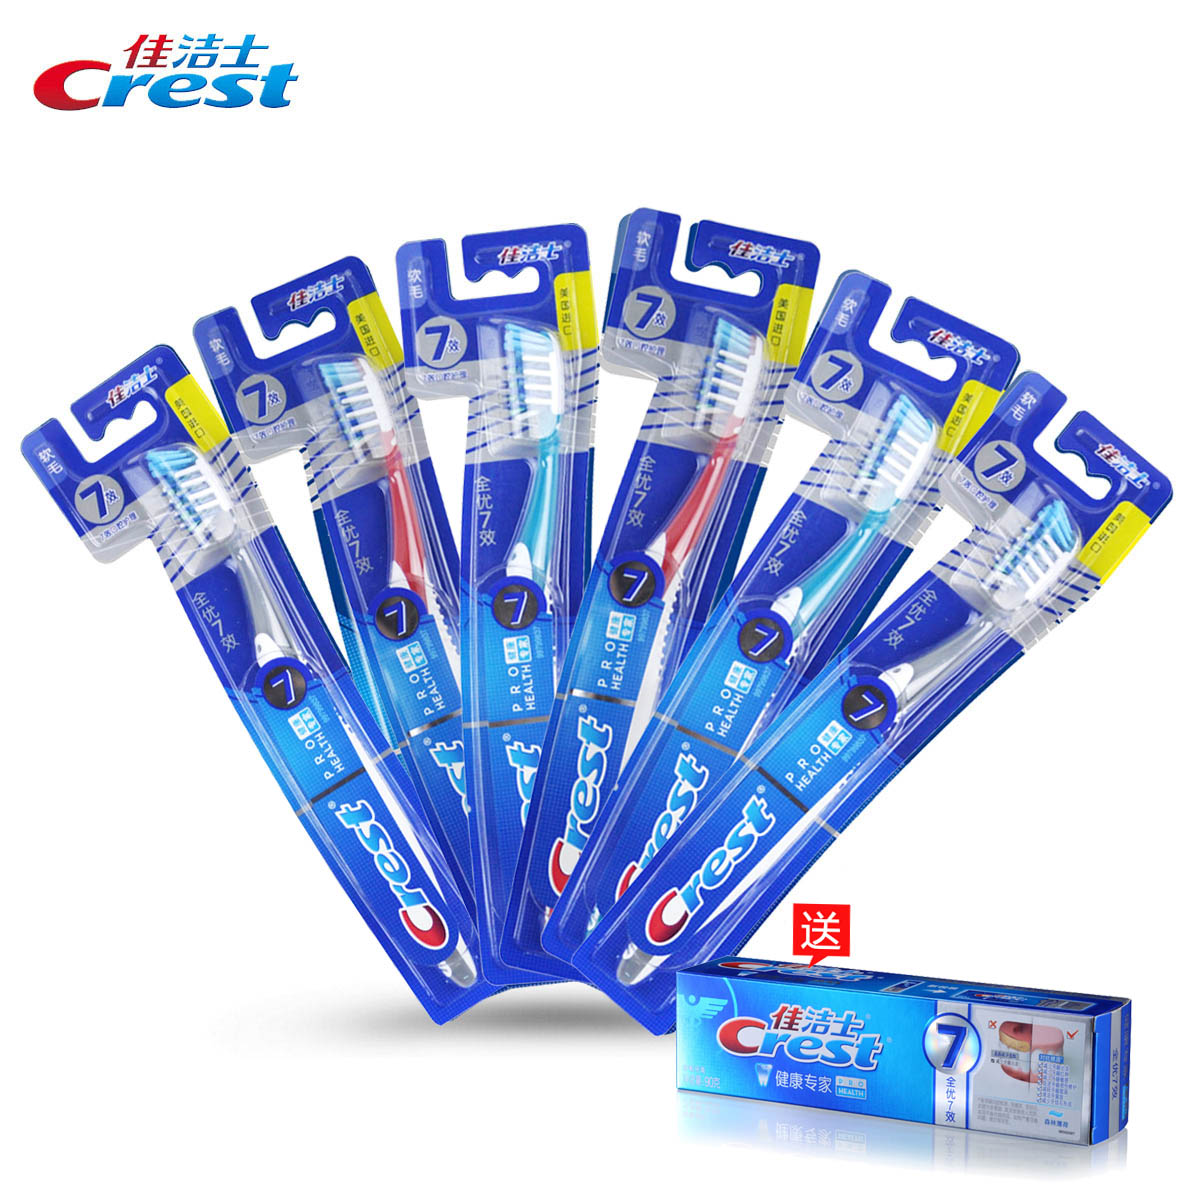 Us imports crest toothbrush soft bristle toothbrush with excellent efficiency 7*6 three suits genuine special offer free shipping